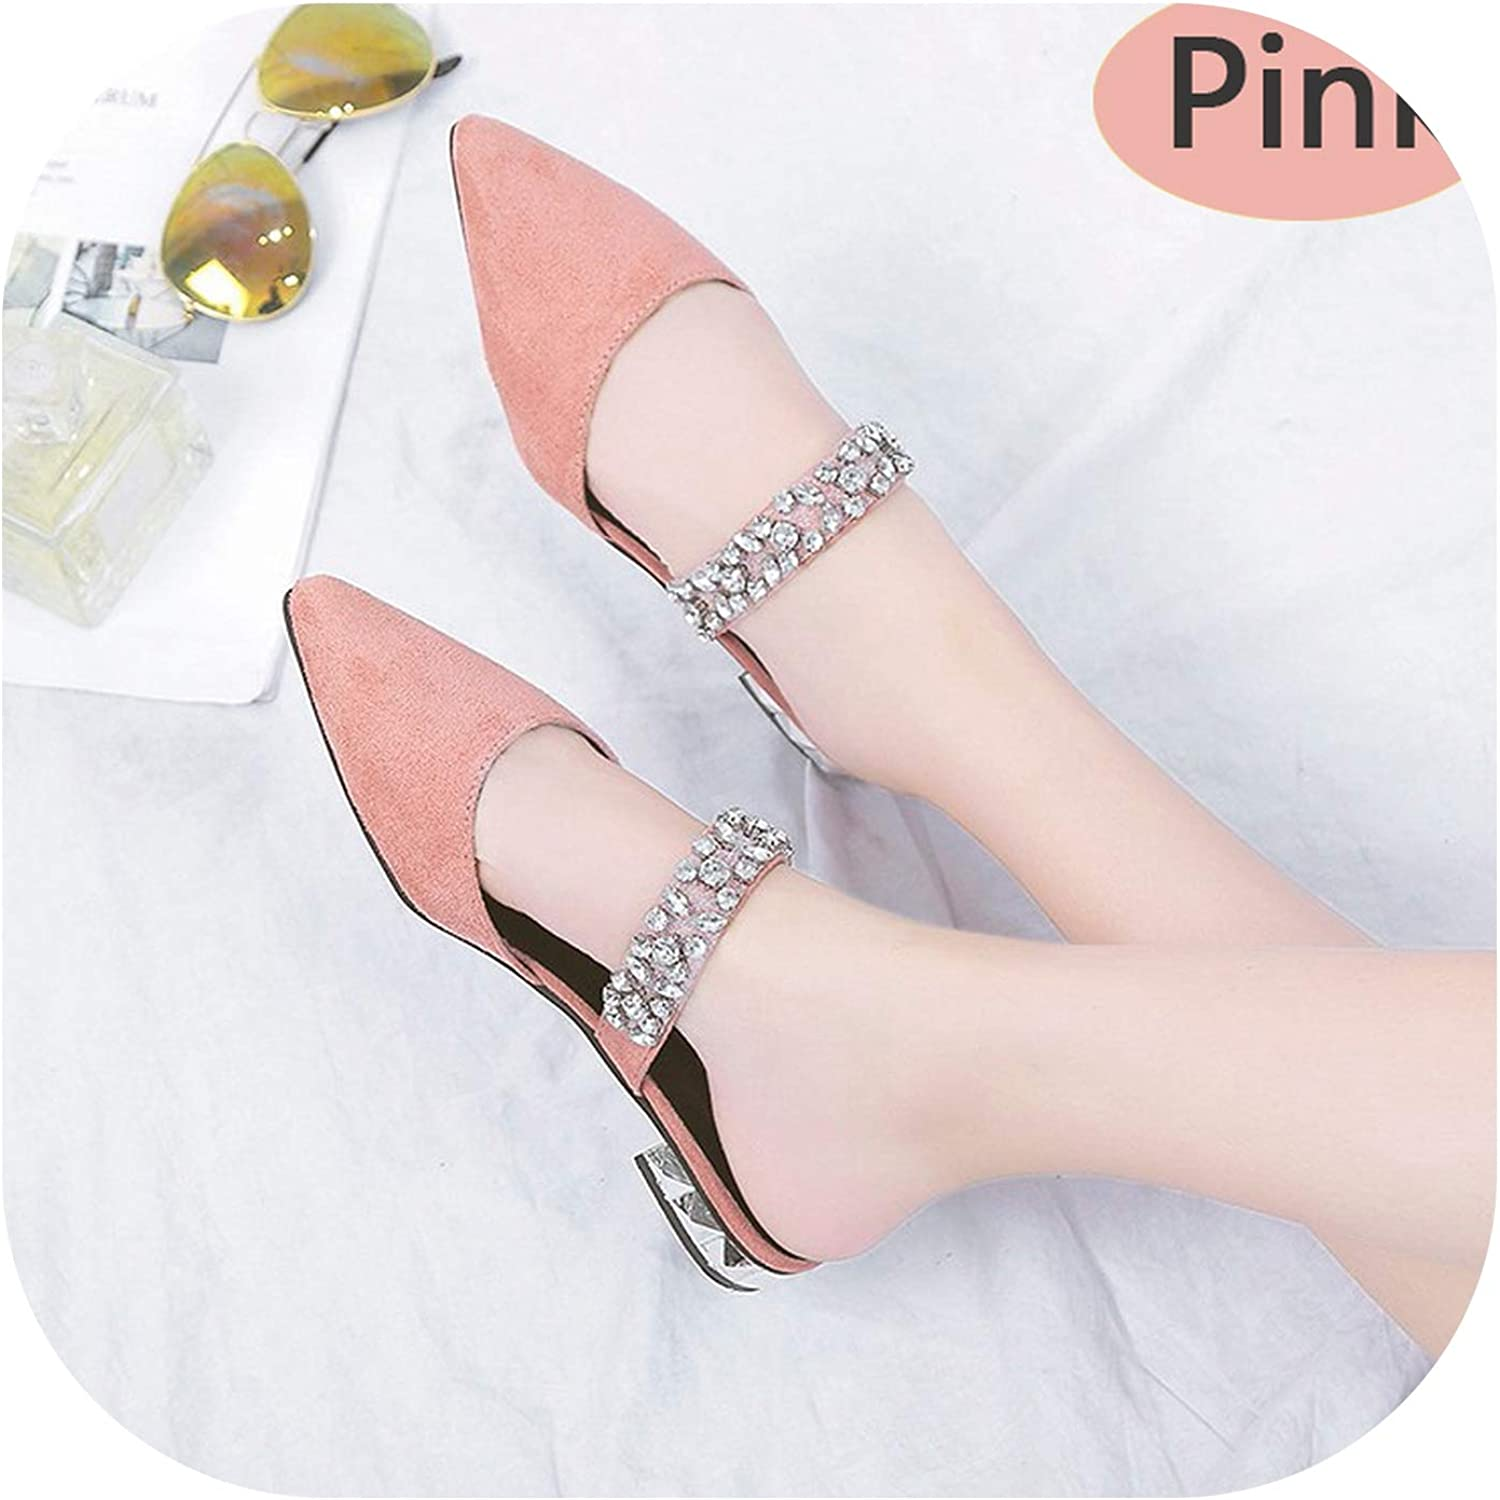 Sweetest-Thing Pointed Mule Slippers,Pointed Toe Suede Square Heel Flip Flops Sandales